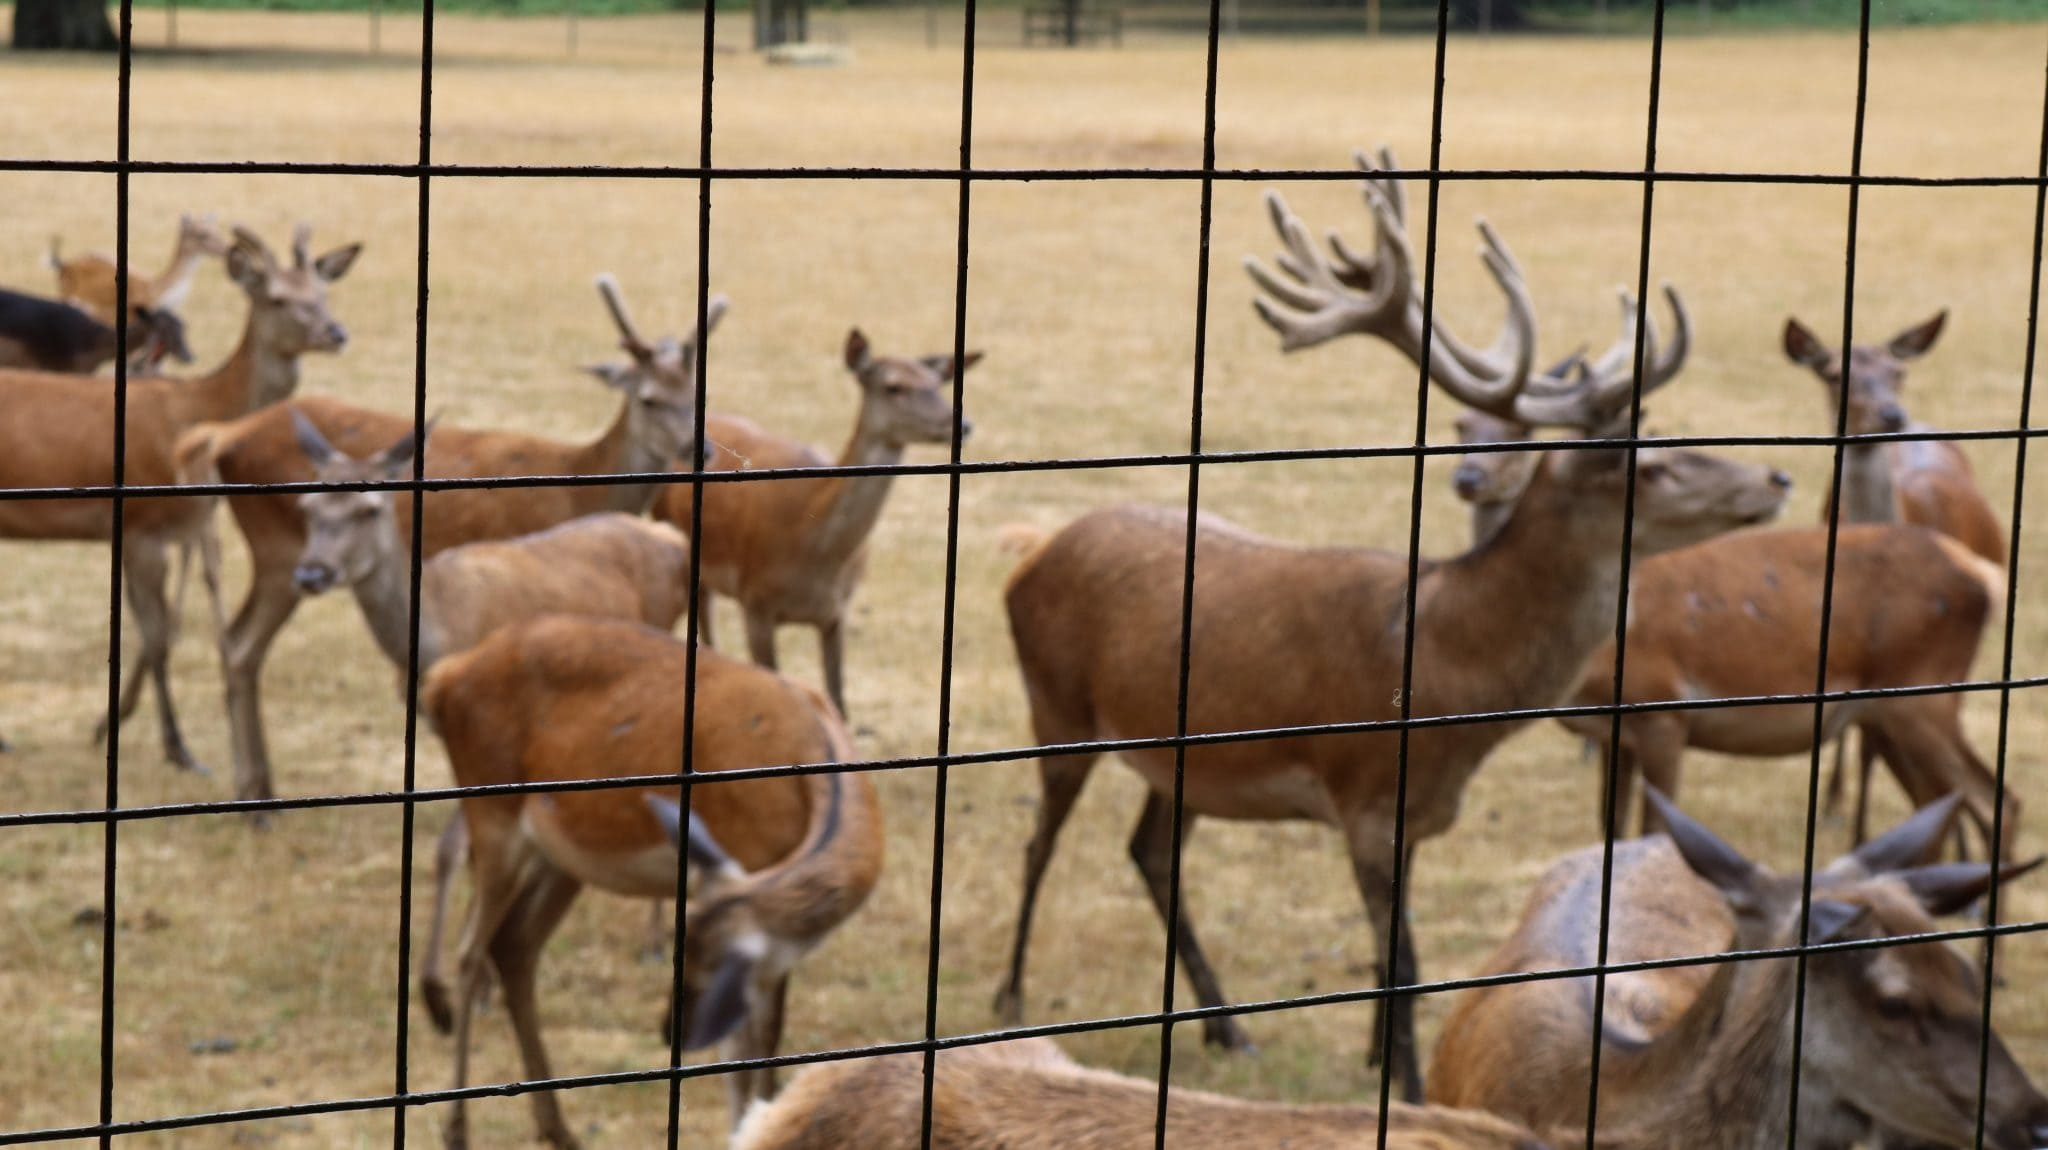 Some of the deer herd including the fabulous stag